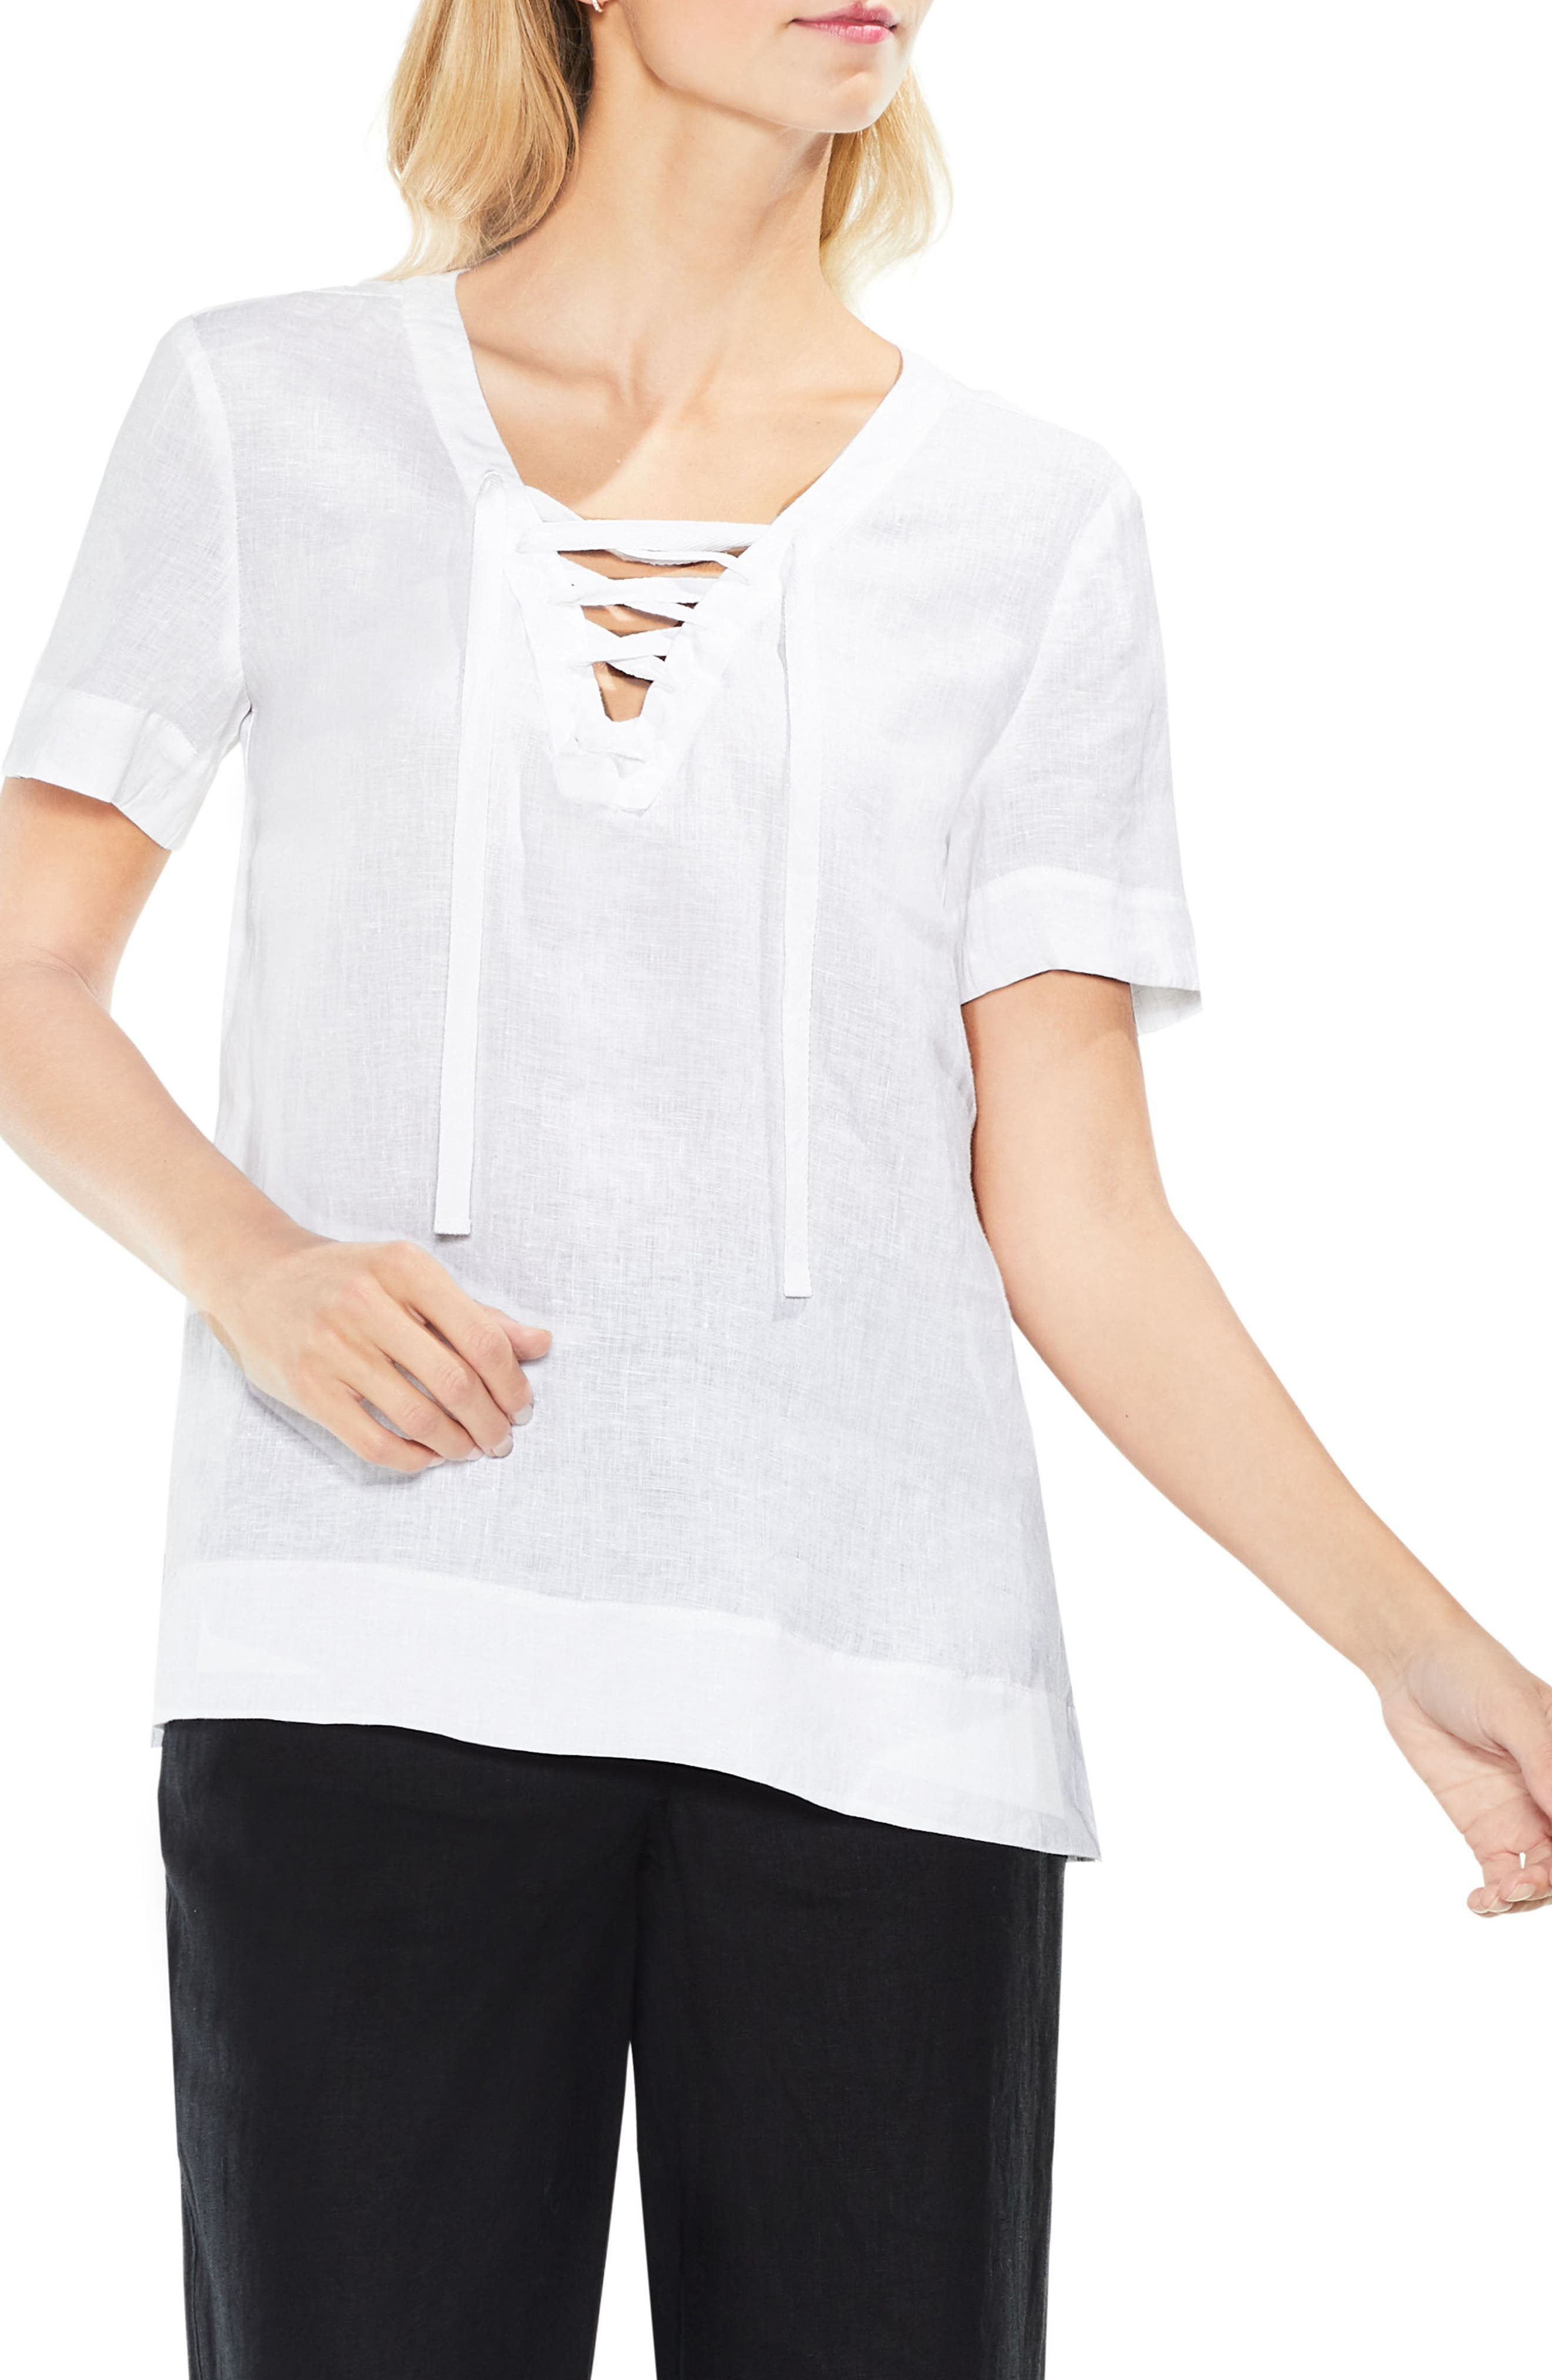 Alternate Image 1 Selected - Two by Vince Camuto Lace-Up Linen Blouse